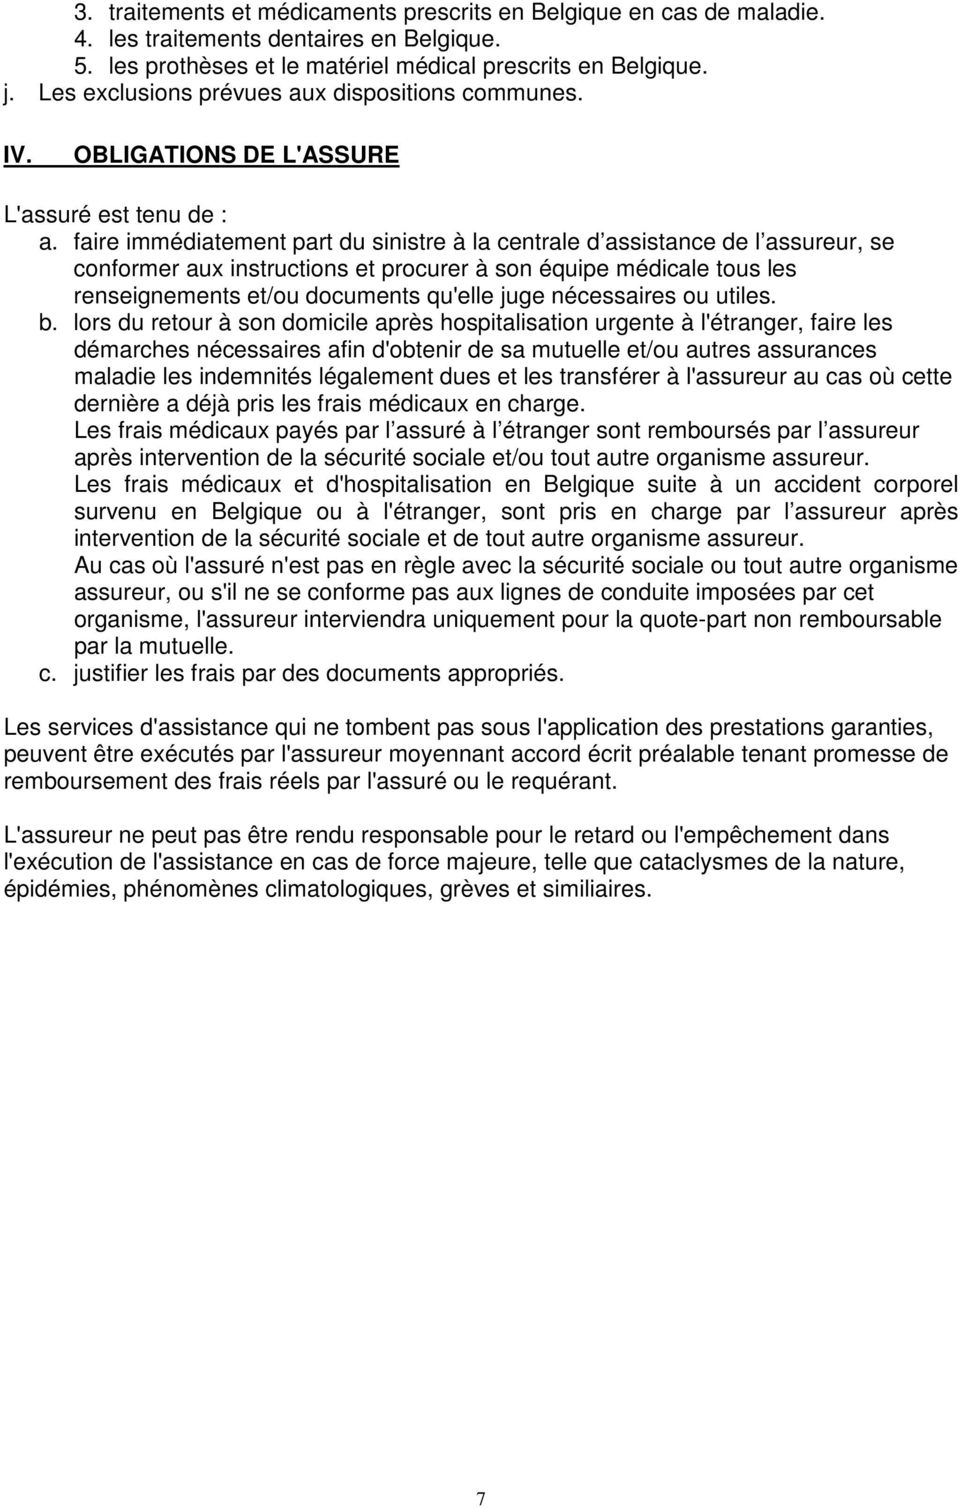 faire immédiatement part du sinistre à la centrale d assistance de l assureur, se conformer aux instructions et procurer à son équipe médicale tous les renseignements et/ou documents qu'elle juge